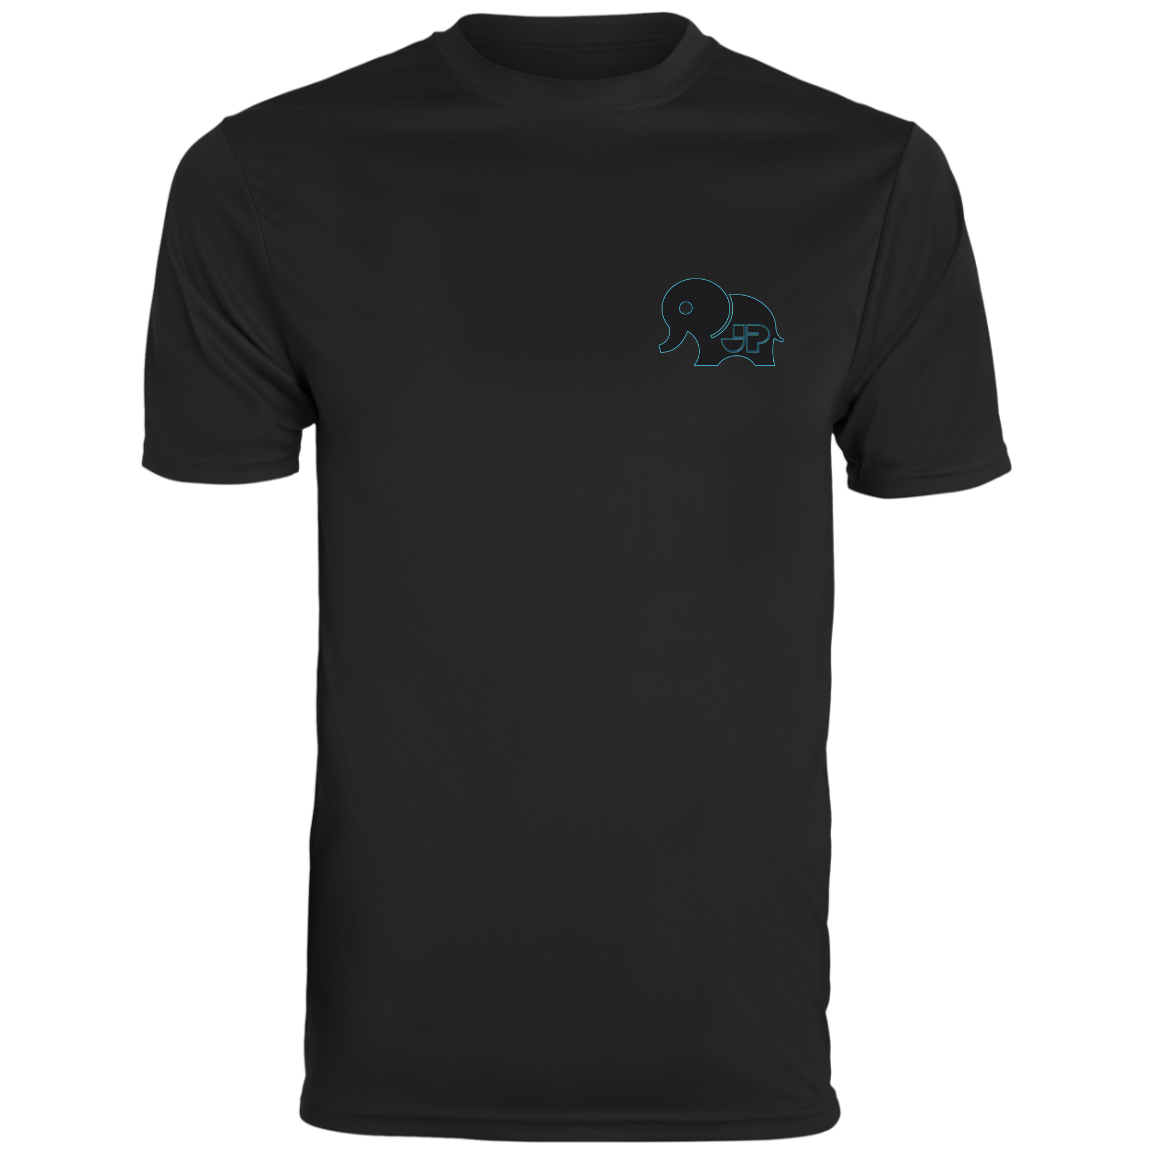 jp_ele - 790 Men's Wicking T-Shirt